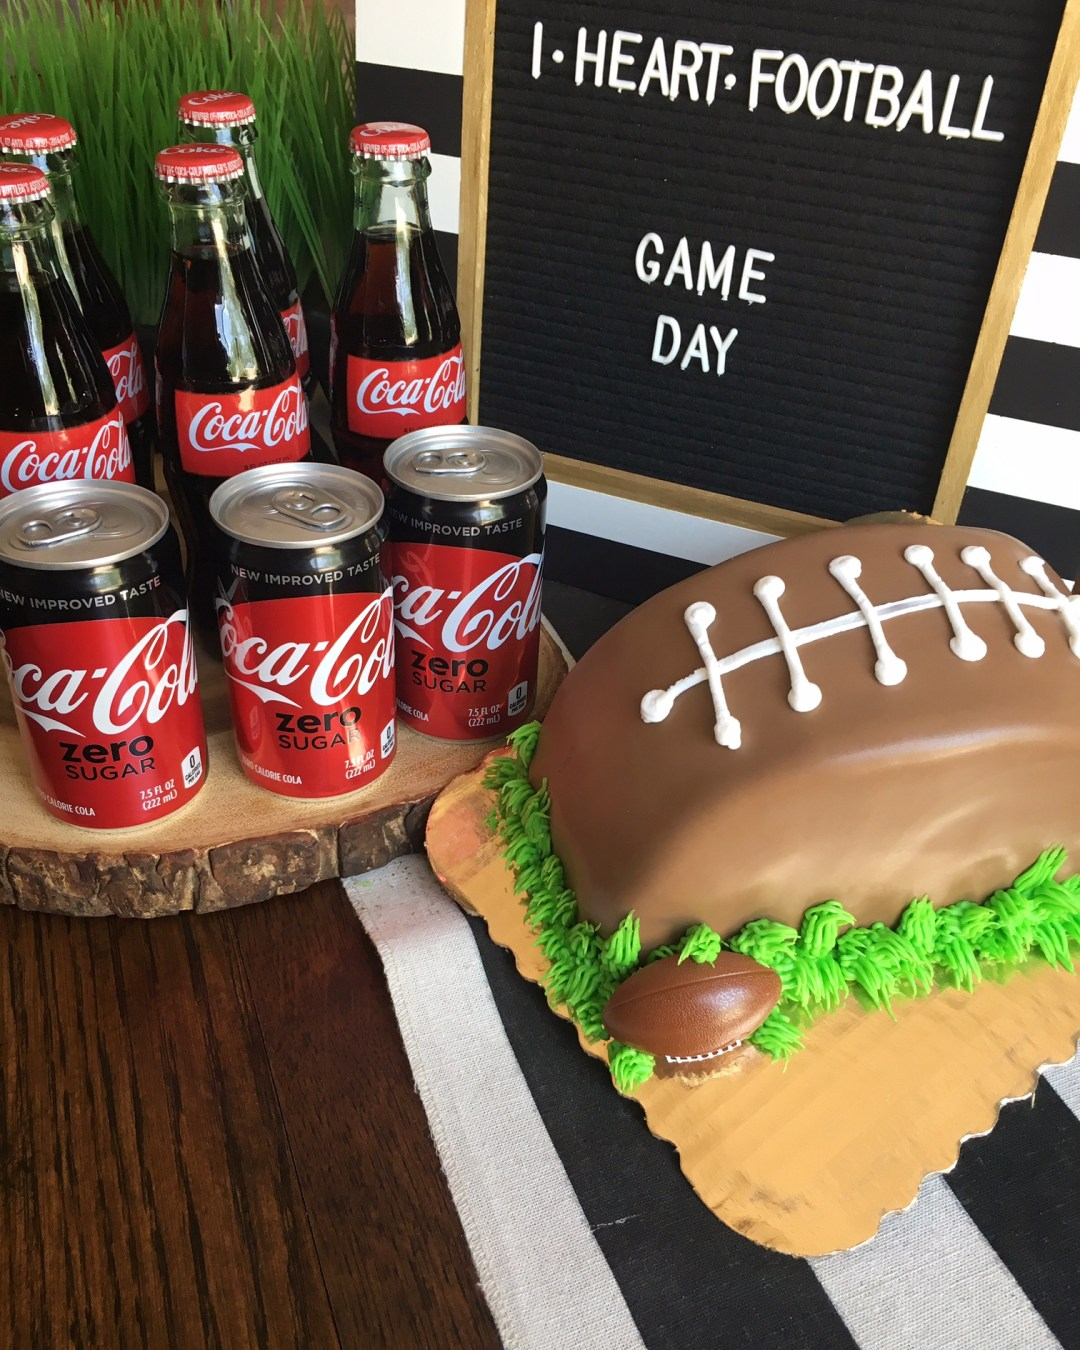 Football Season Is Back - Family Friendly HOME-GATING Ideas. Everything you need to throw a kid-friendly tailgating party at home! TOUCHDOWN!